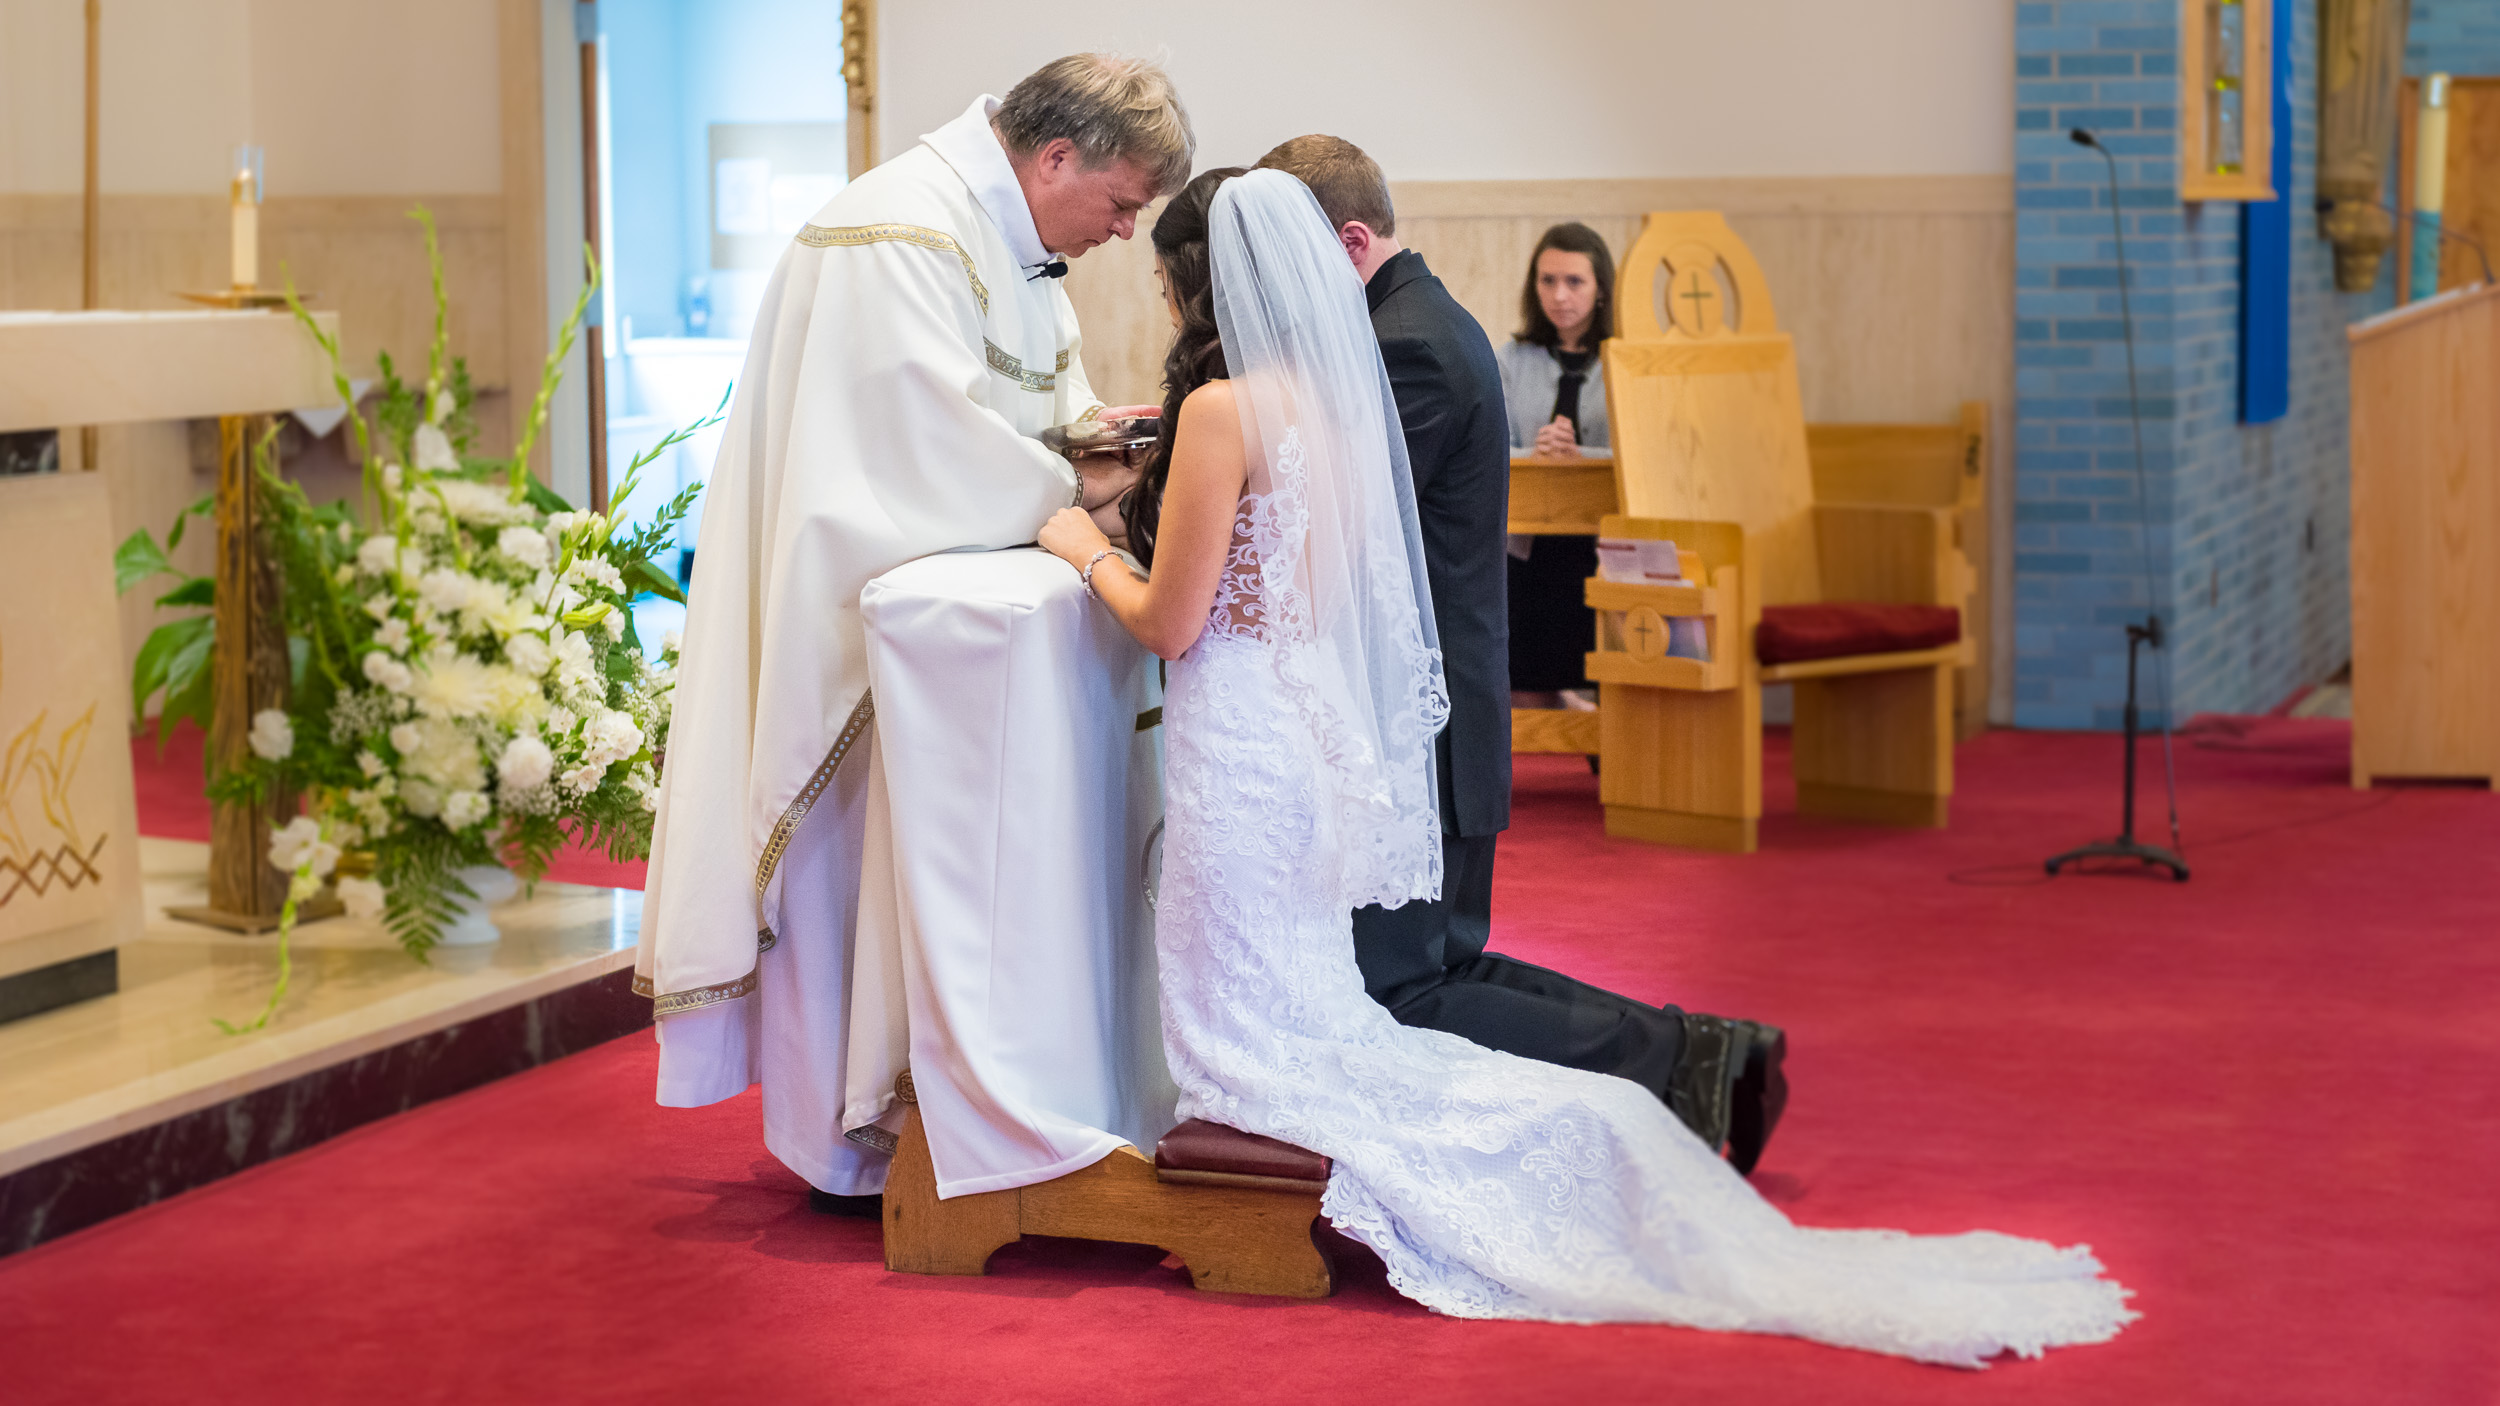 Wedding-ceremony-bride-and-groom-with-priest-1.jpg